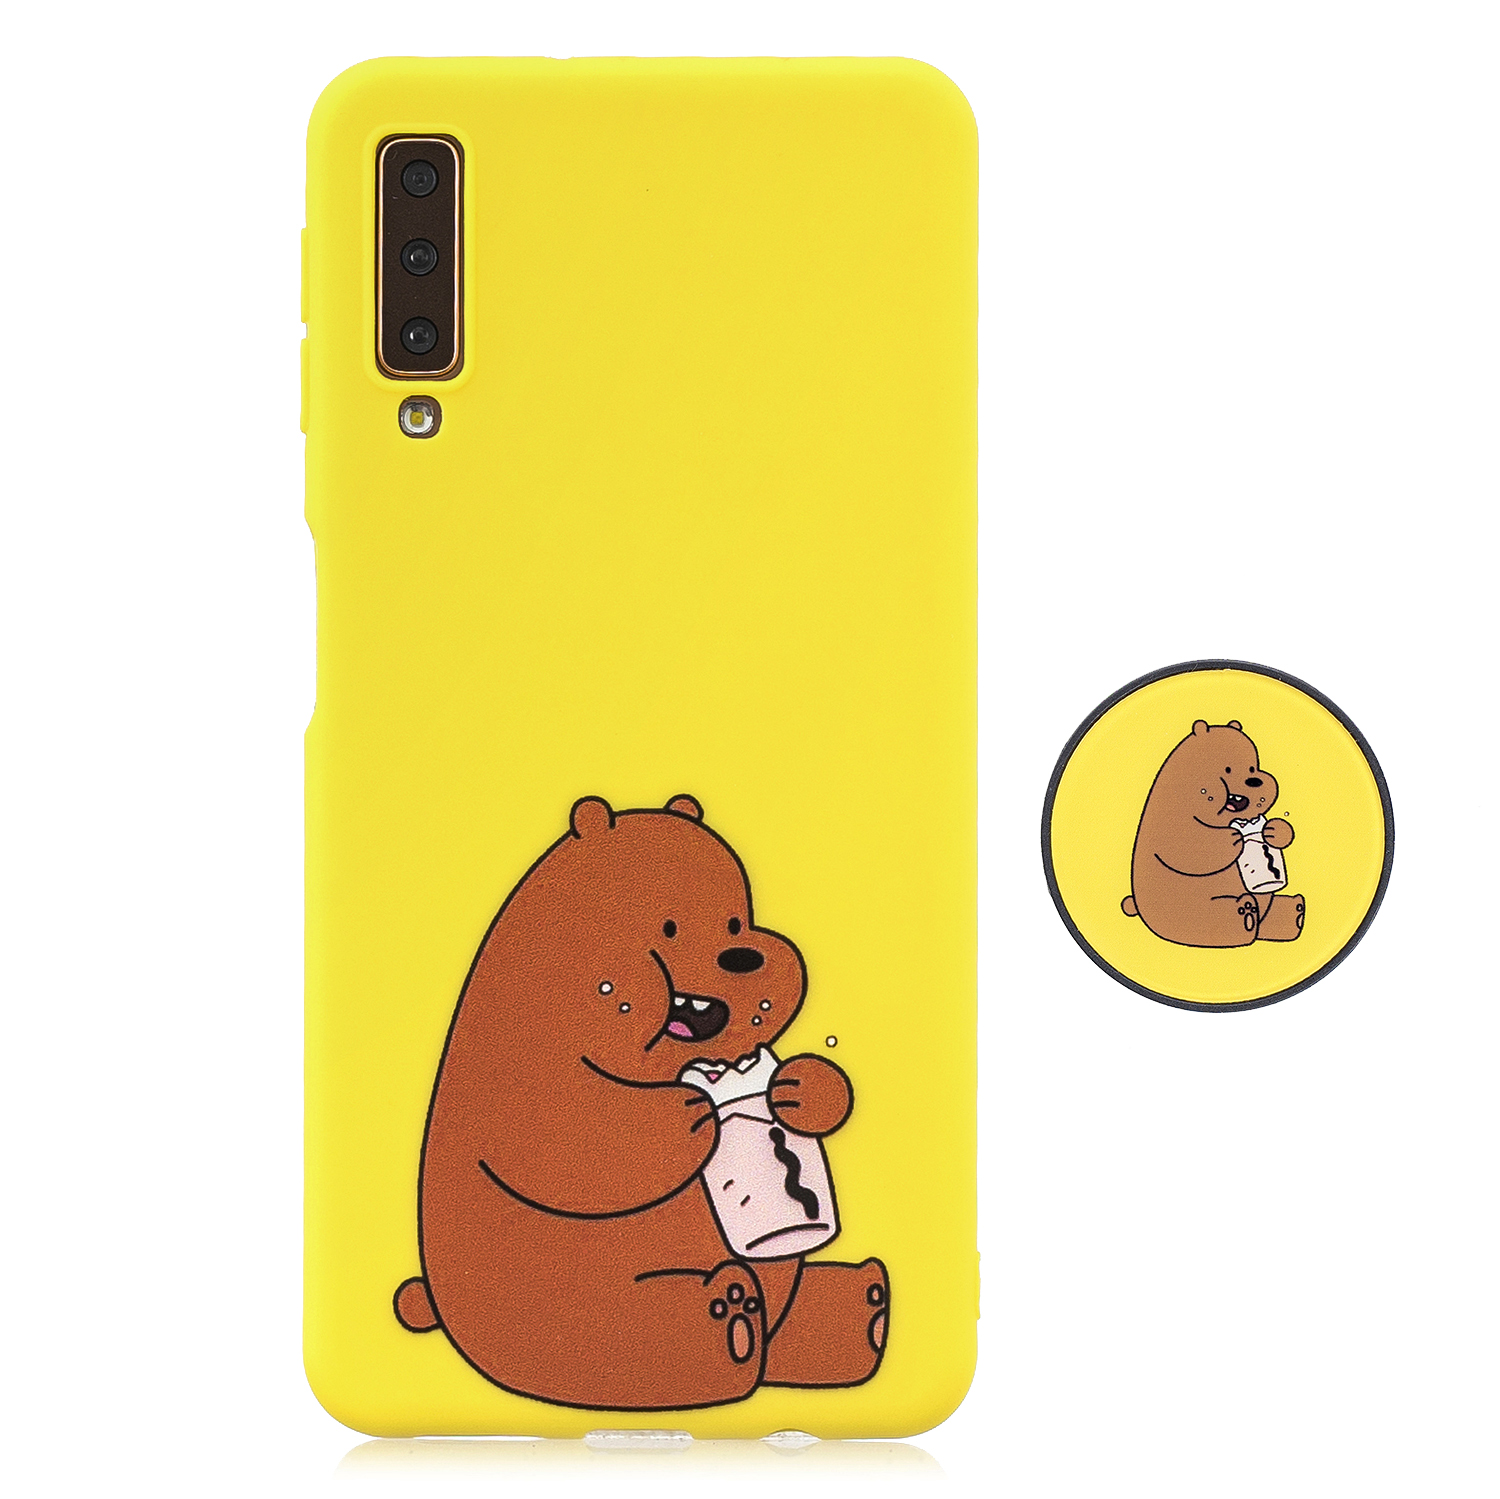 For Samsung A7 2018 A750 Full Cover Protective Phone Case Cartoon Pattern Solid Color TPU Phone Case with Adjustable Bracket 8